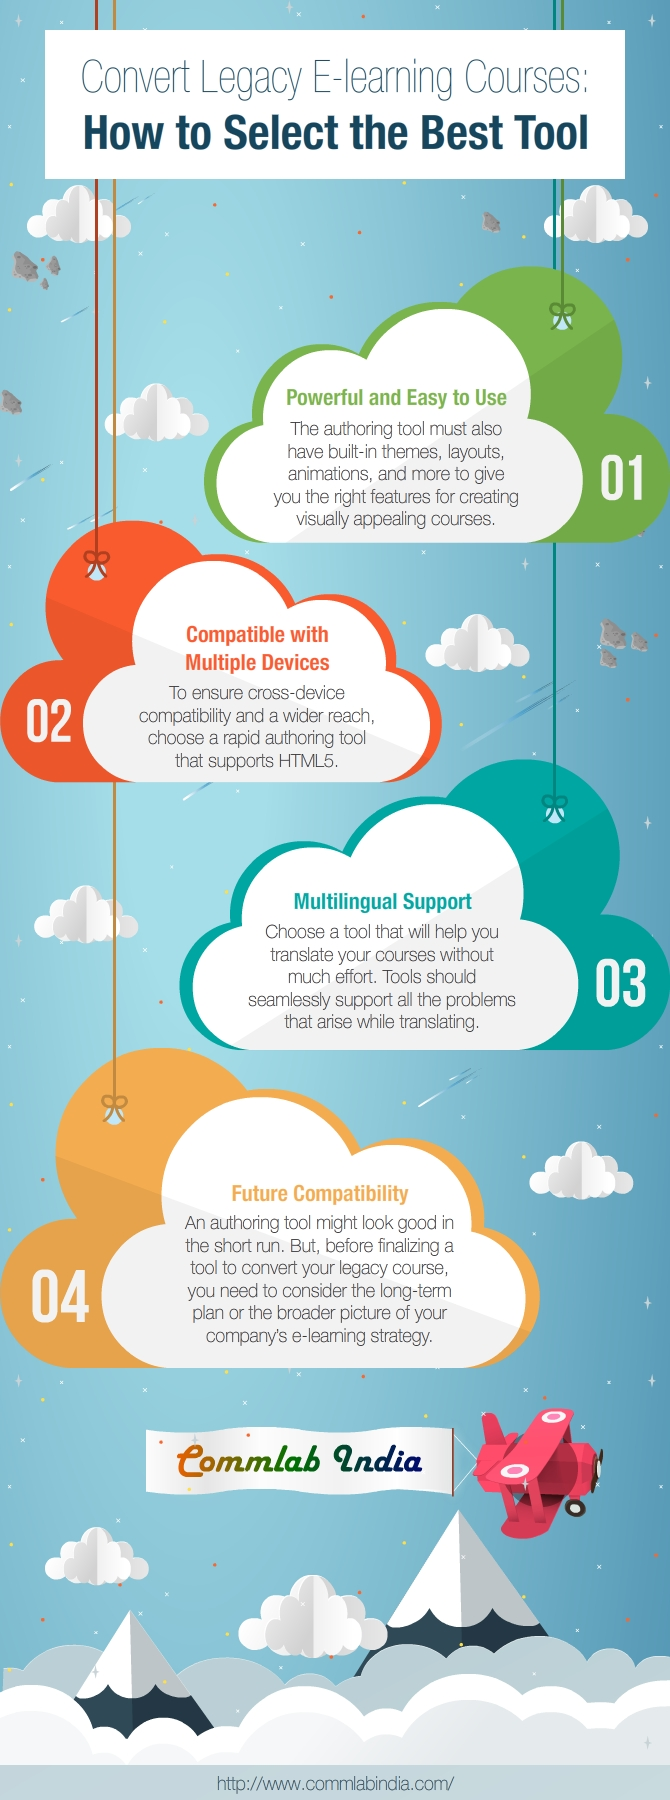 Convert Legacy E-learning Courses: How to Select the Best Tool [Infographic]